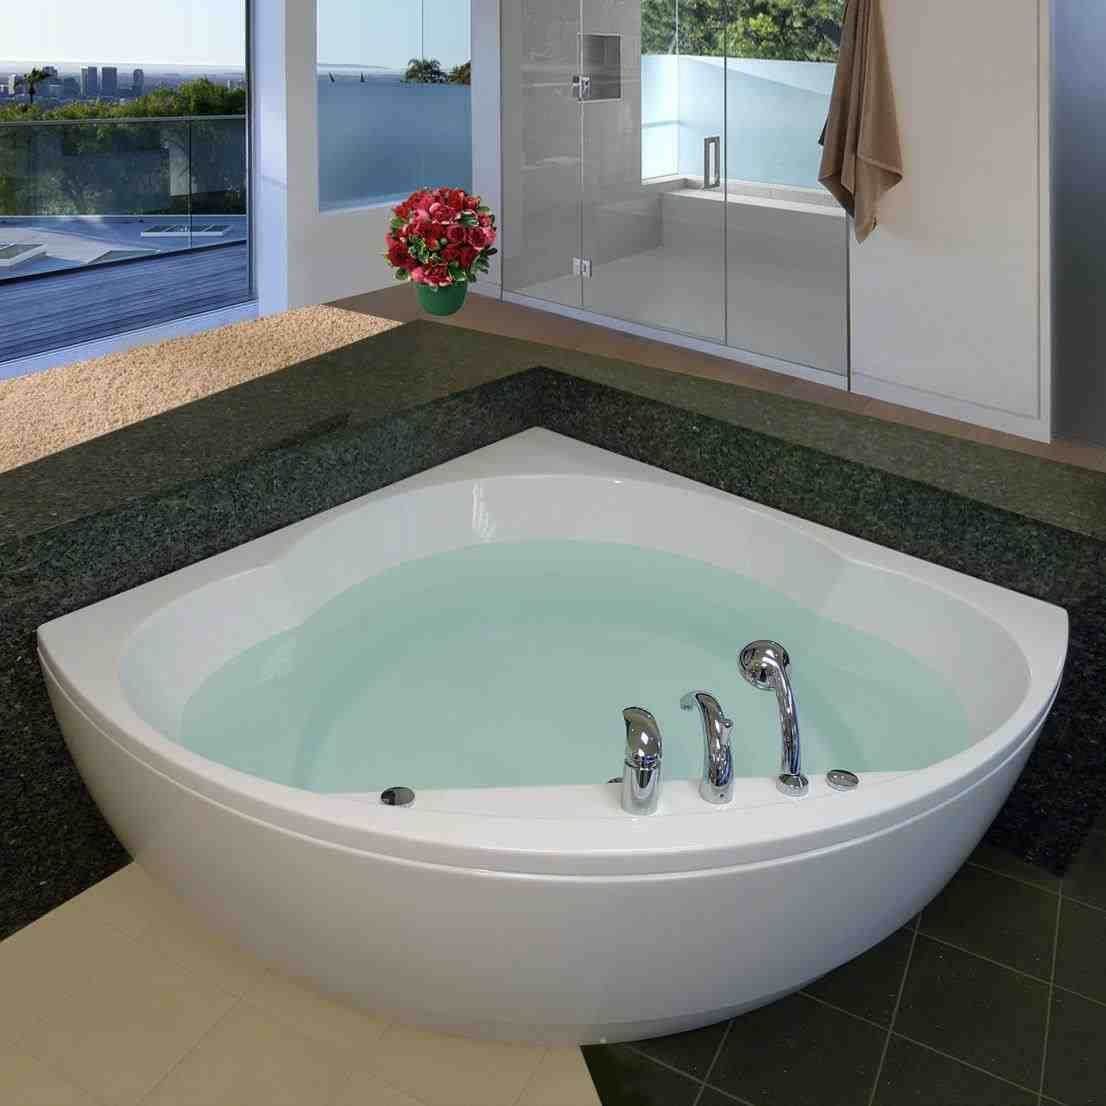 Enchanting Soaker Tub Depth Images - Bathtub Ideas - dilata.info